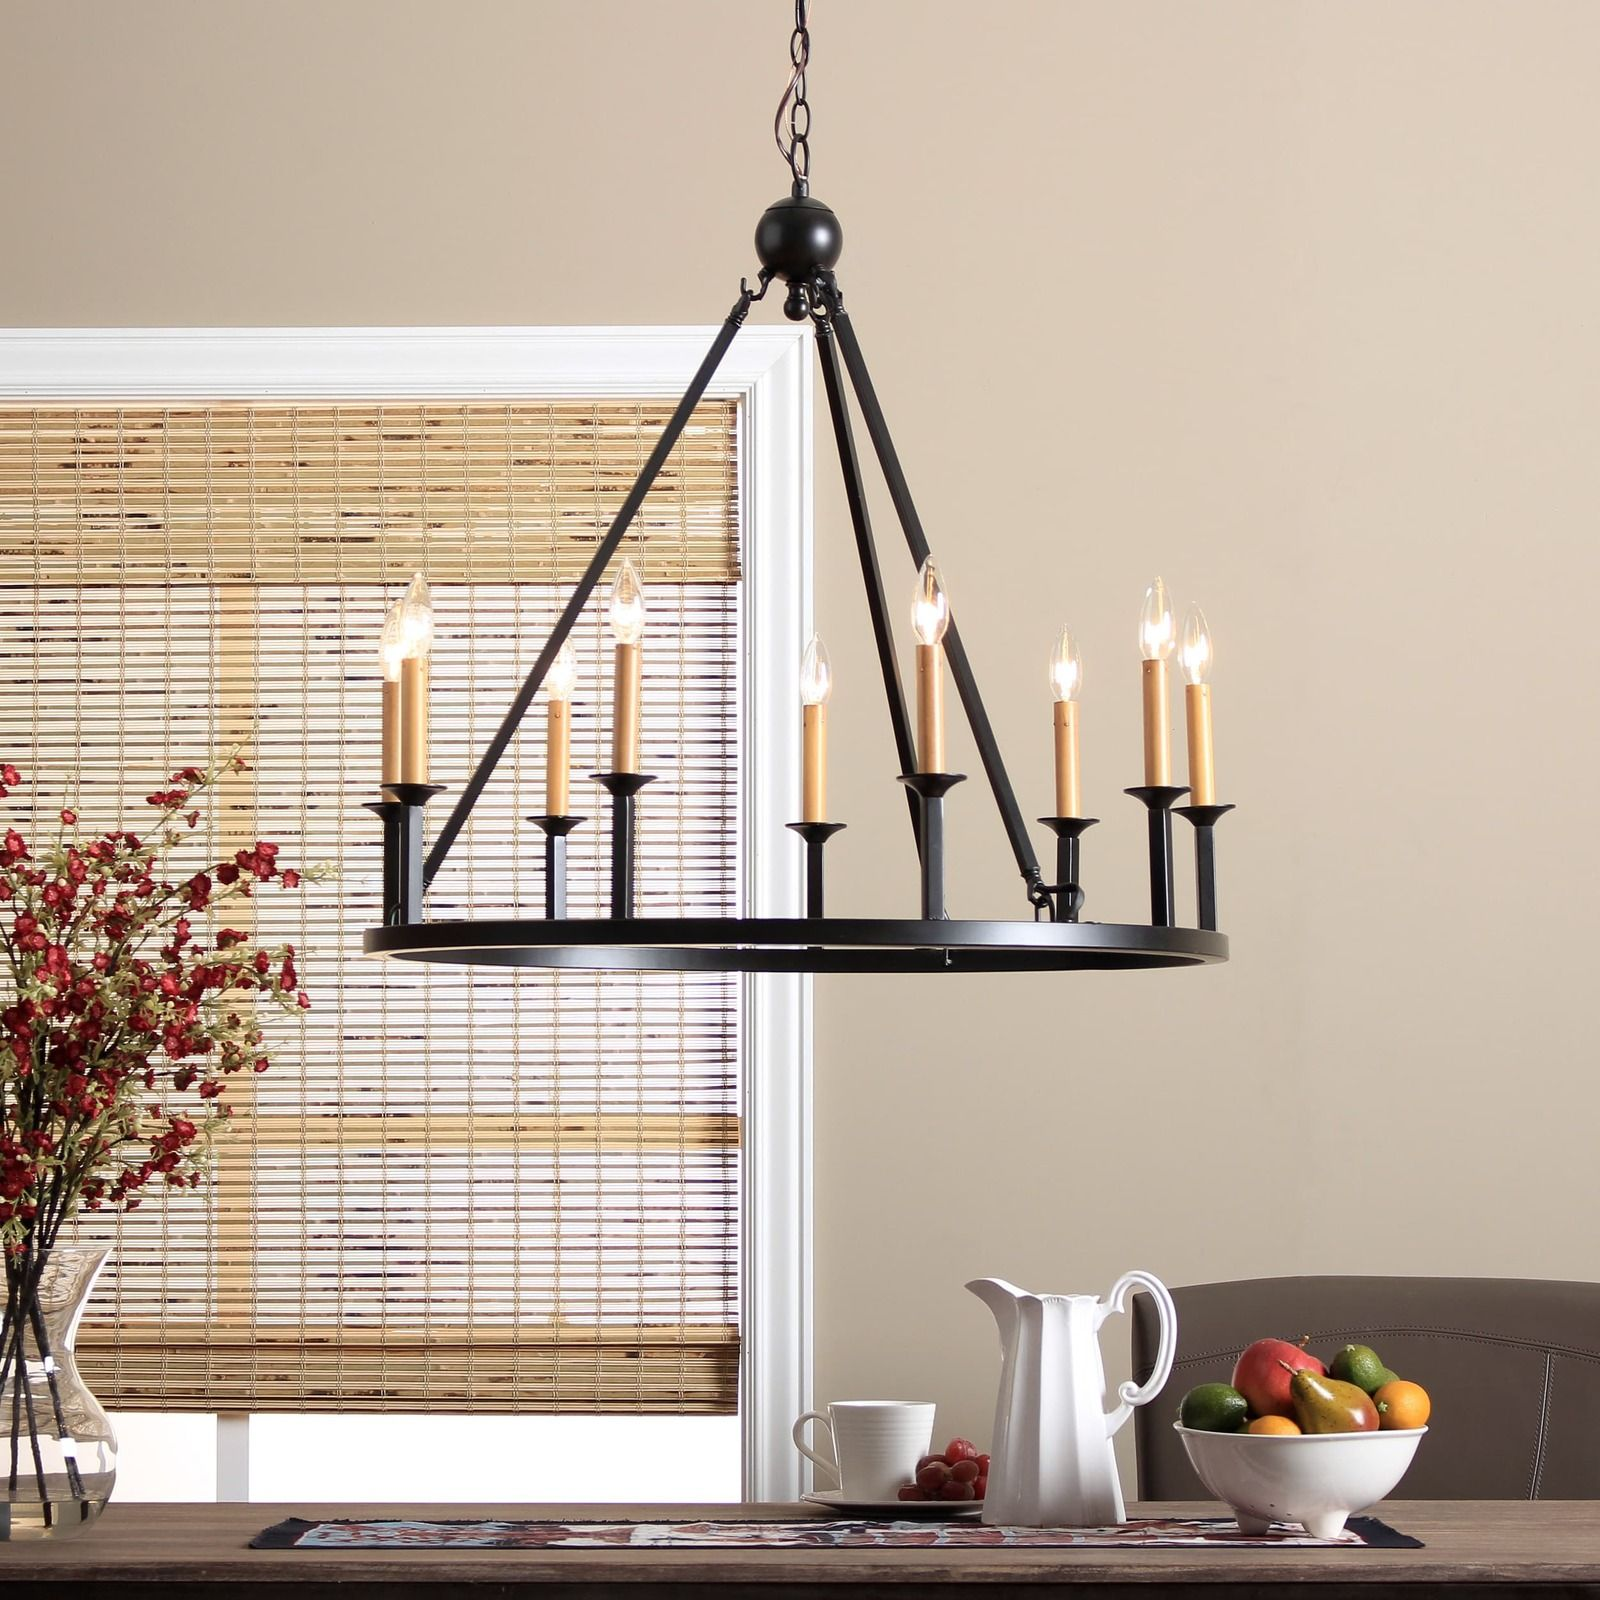 World Of Architecture 16 Simple Elegant And Affordable: 9 Light Rustic Chandelier Ceiling Lighting Candle Round